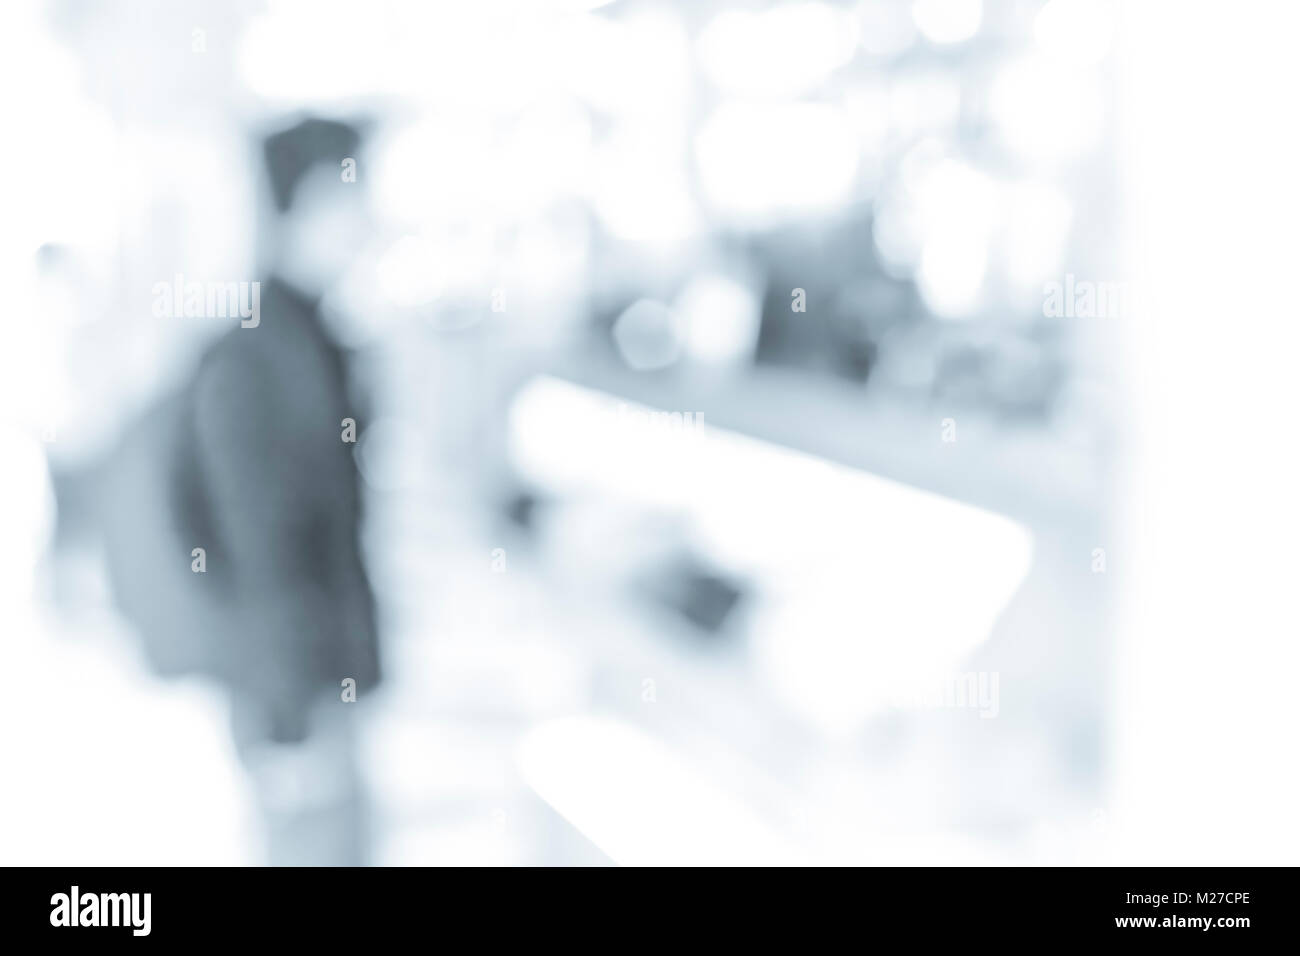 Abstract background of people on shopping mall in B&W color - Stock Image